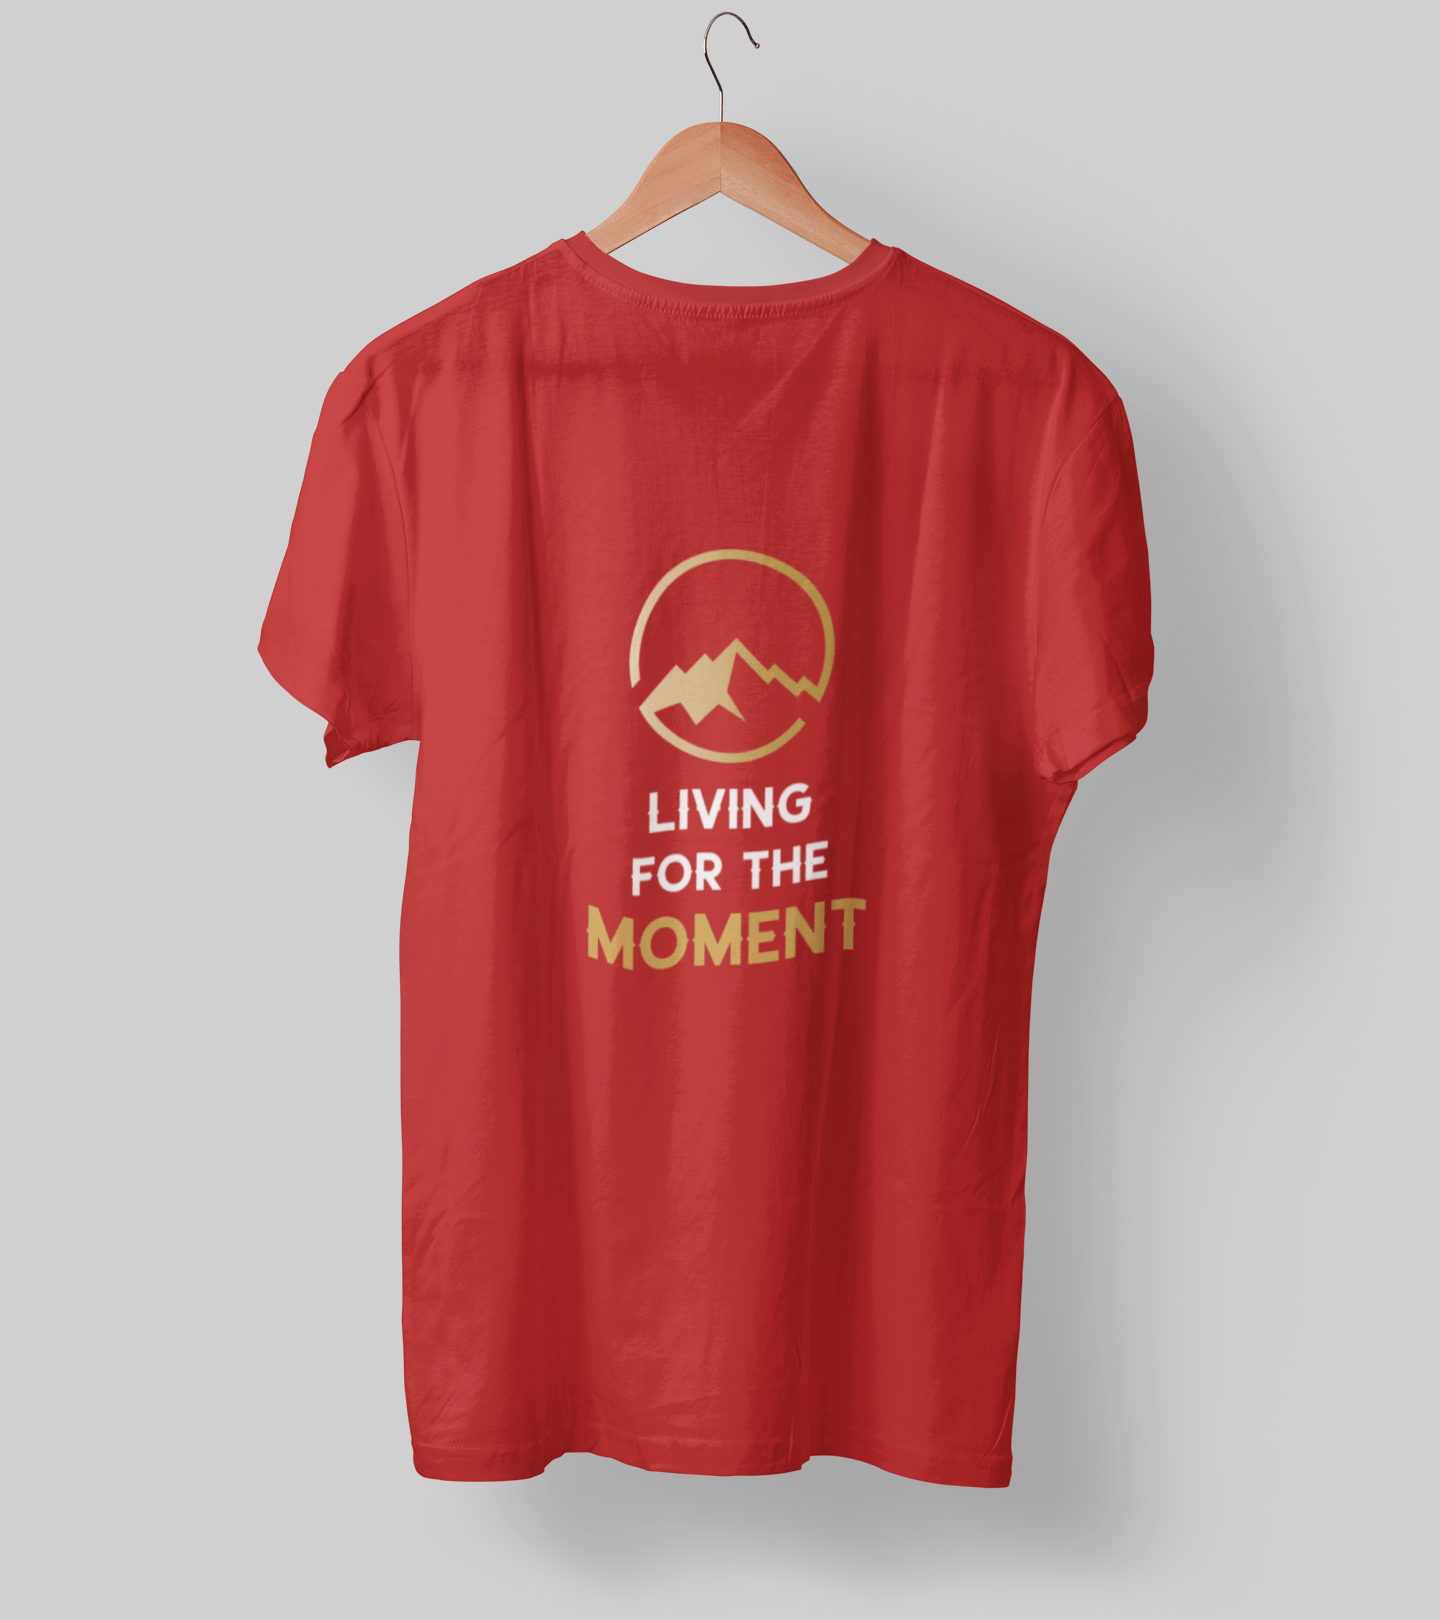 Living for the moment! Clothing Printrove Red S